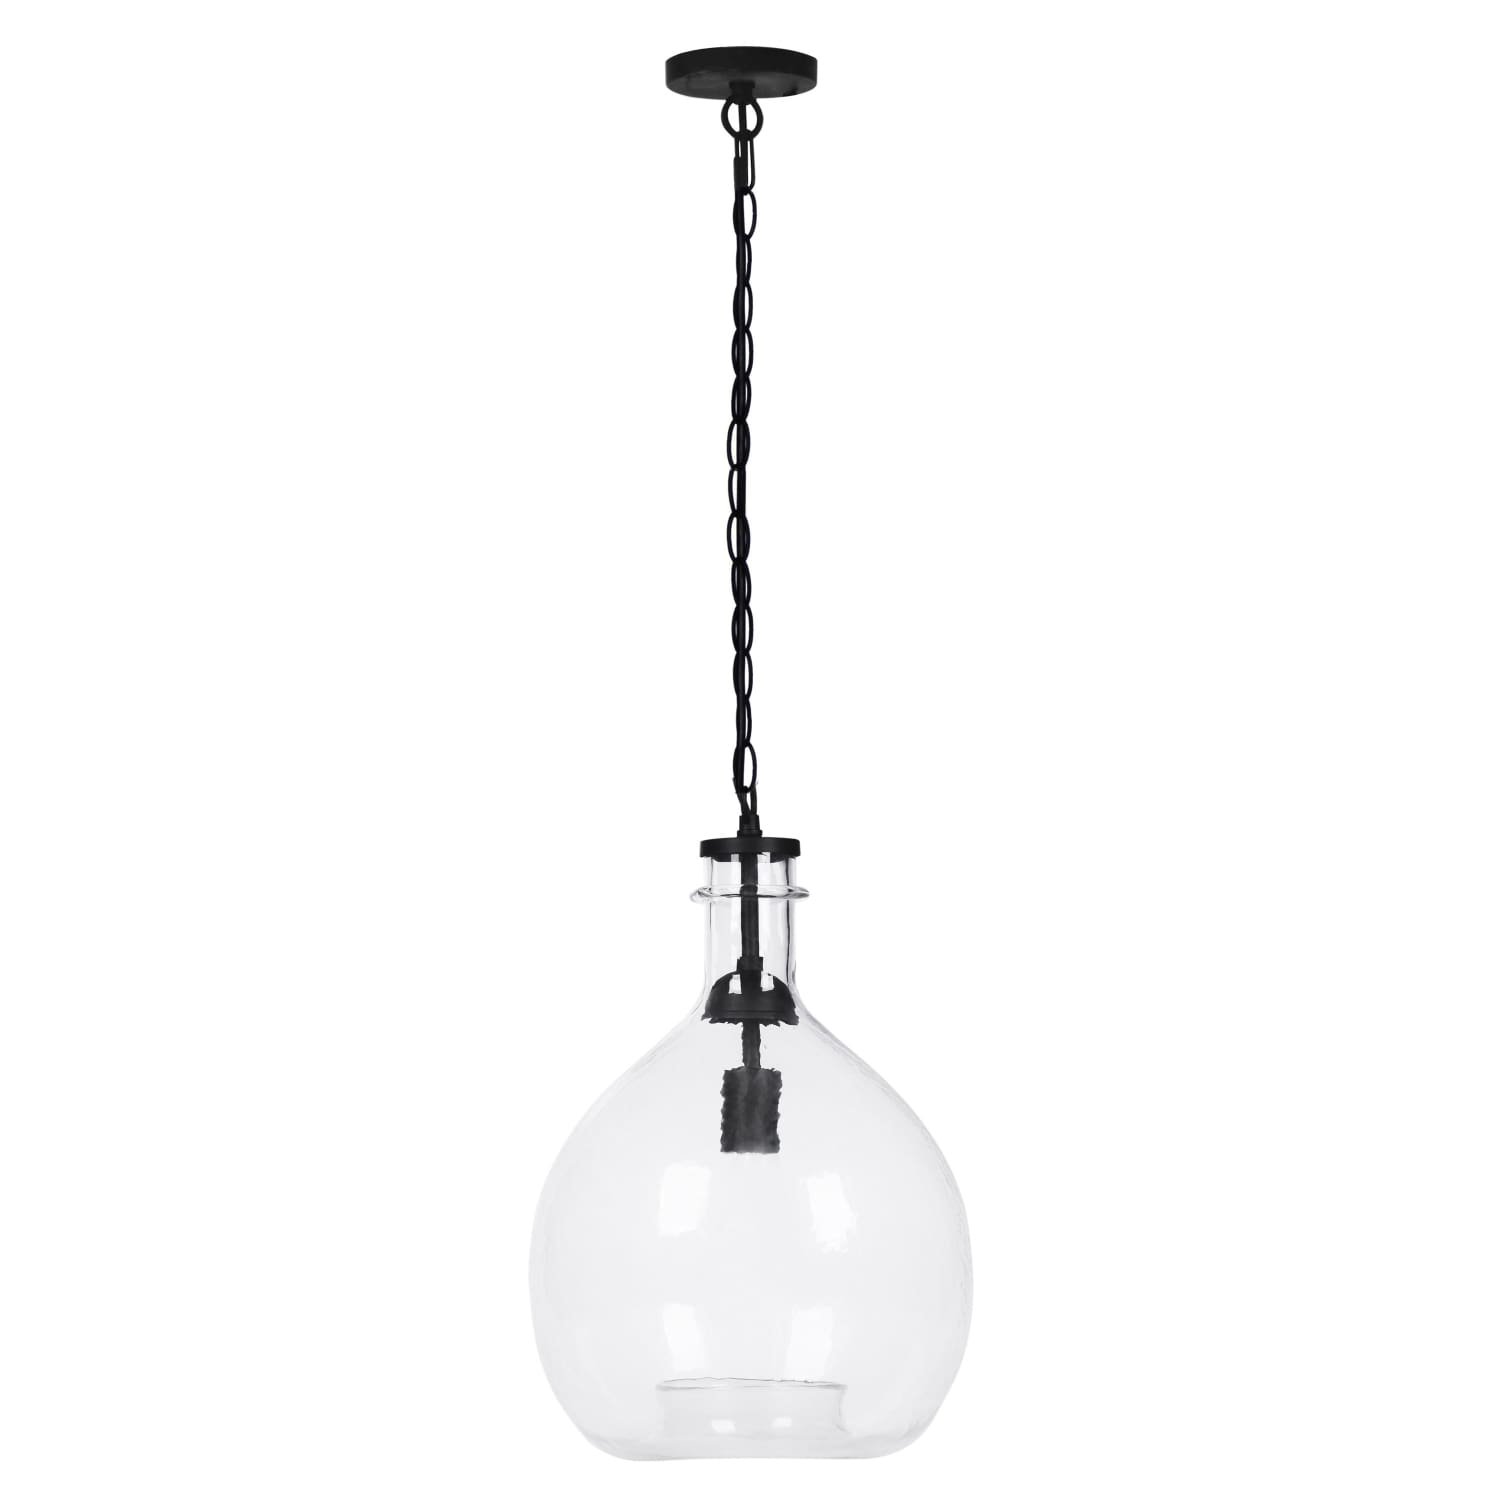 Lampe Suspendue - Altair Large Transparent - Noir